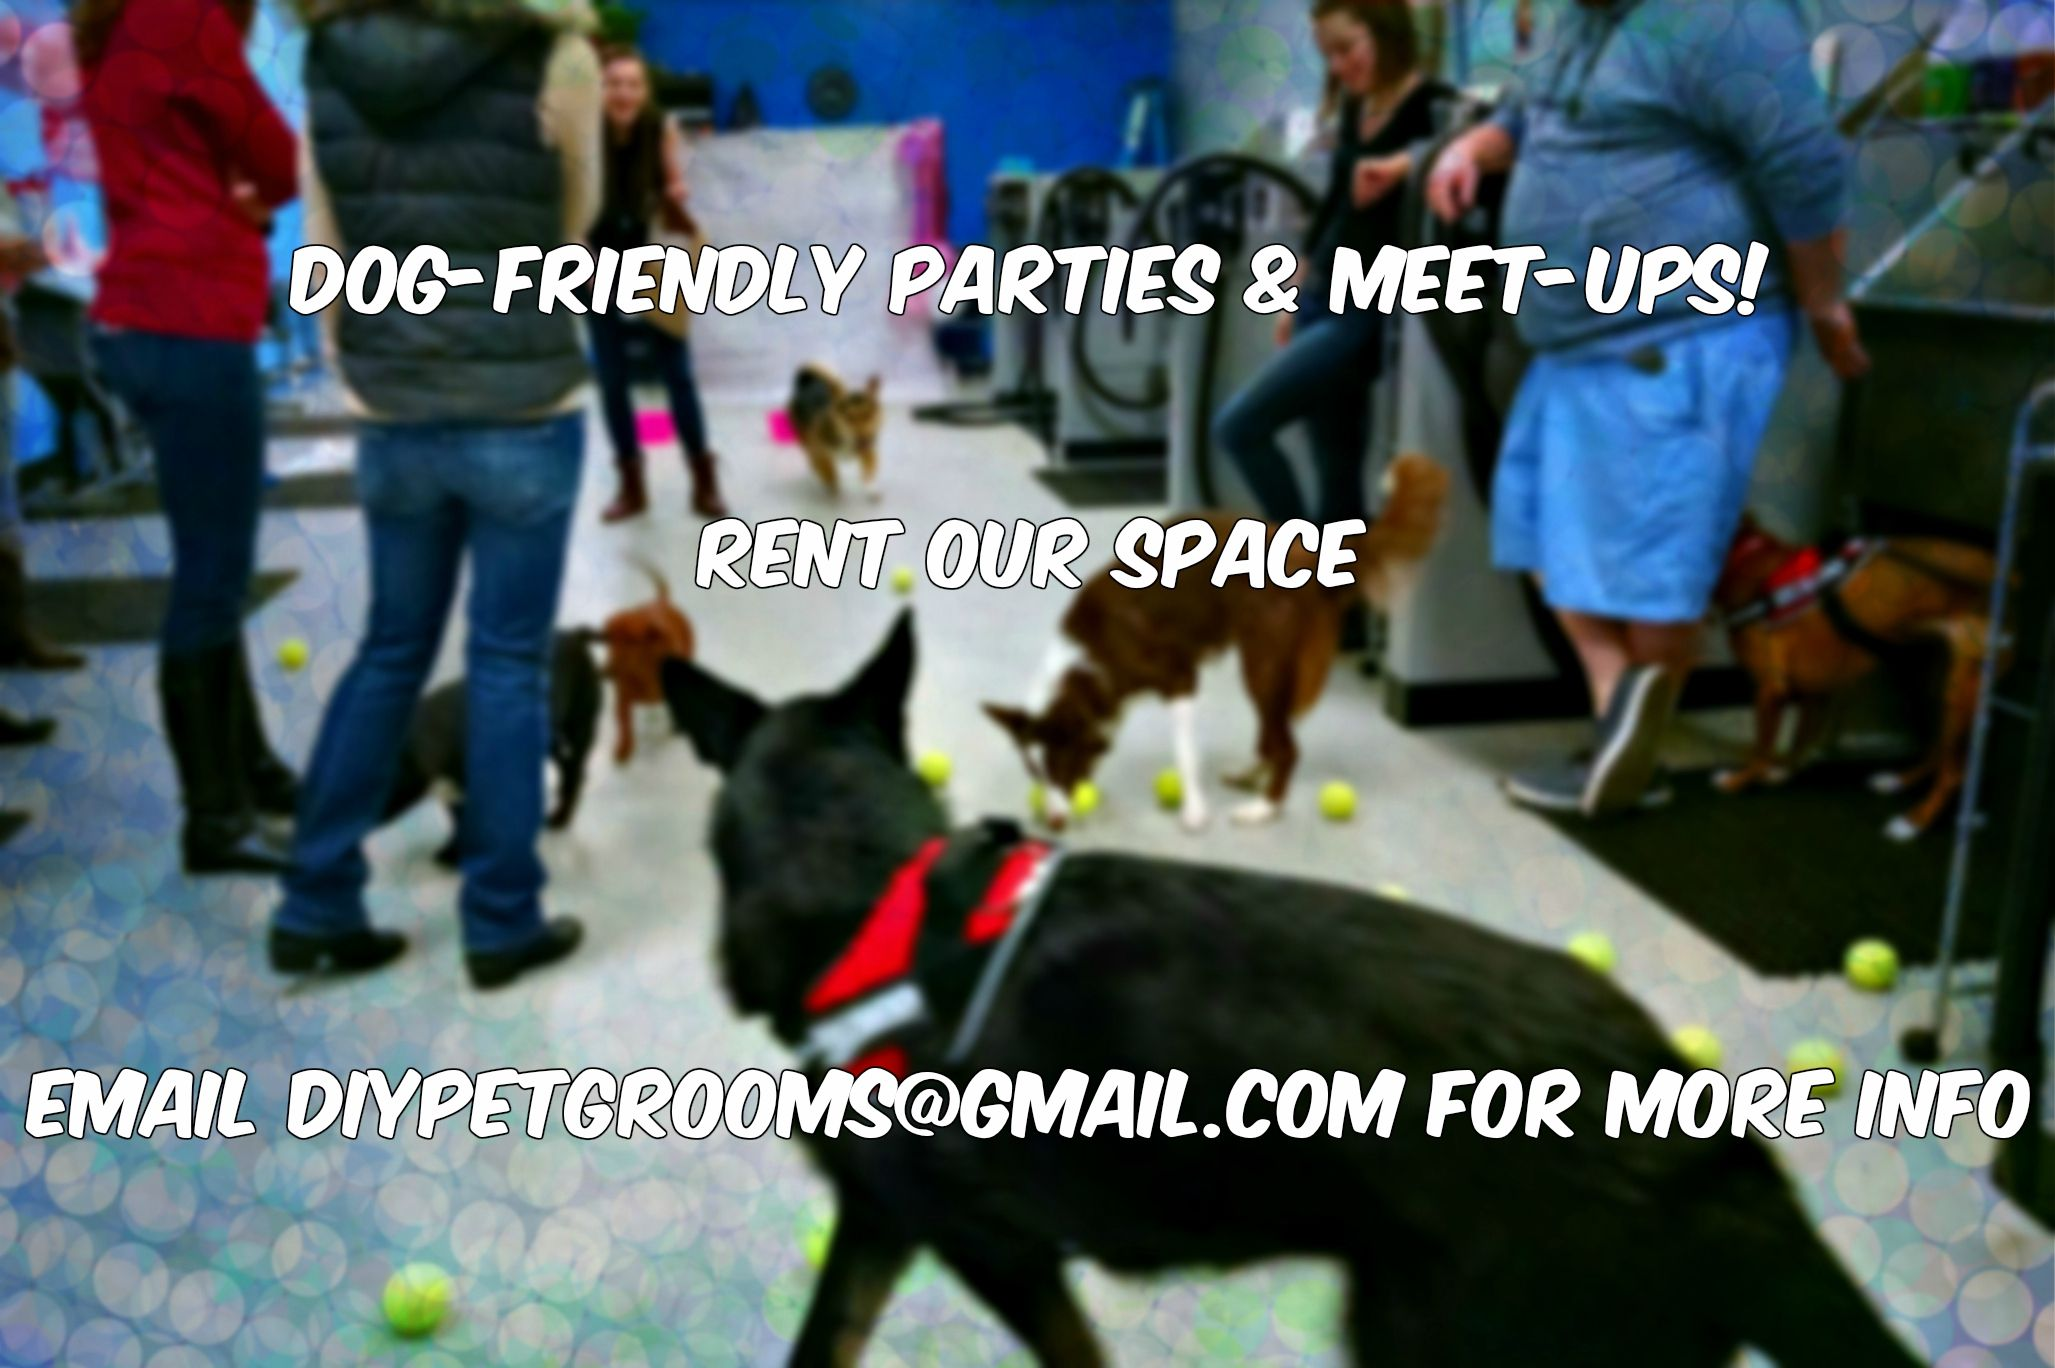 Dog party ideas space rental dogfriendly dog